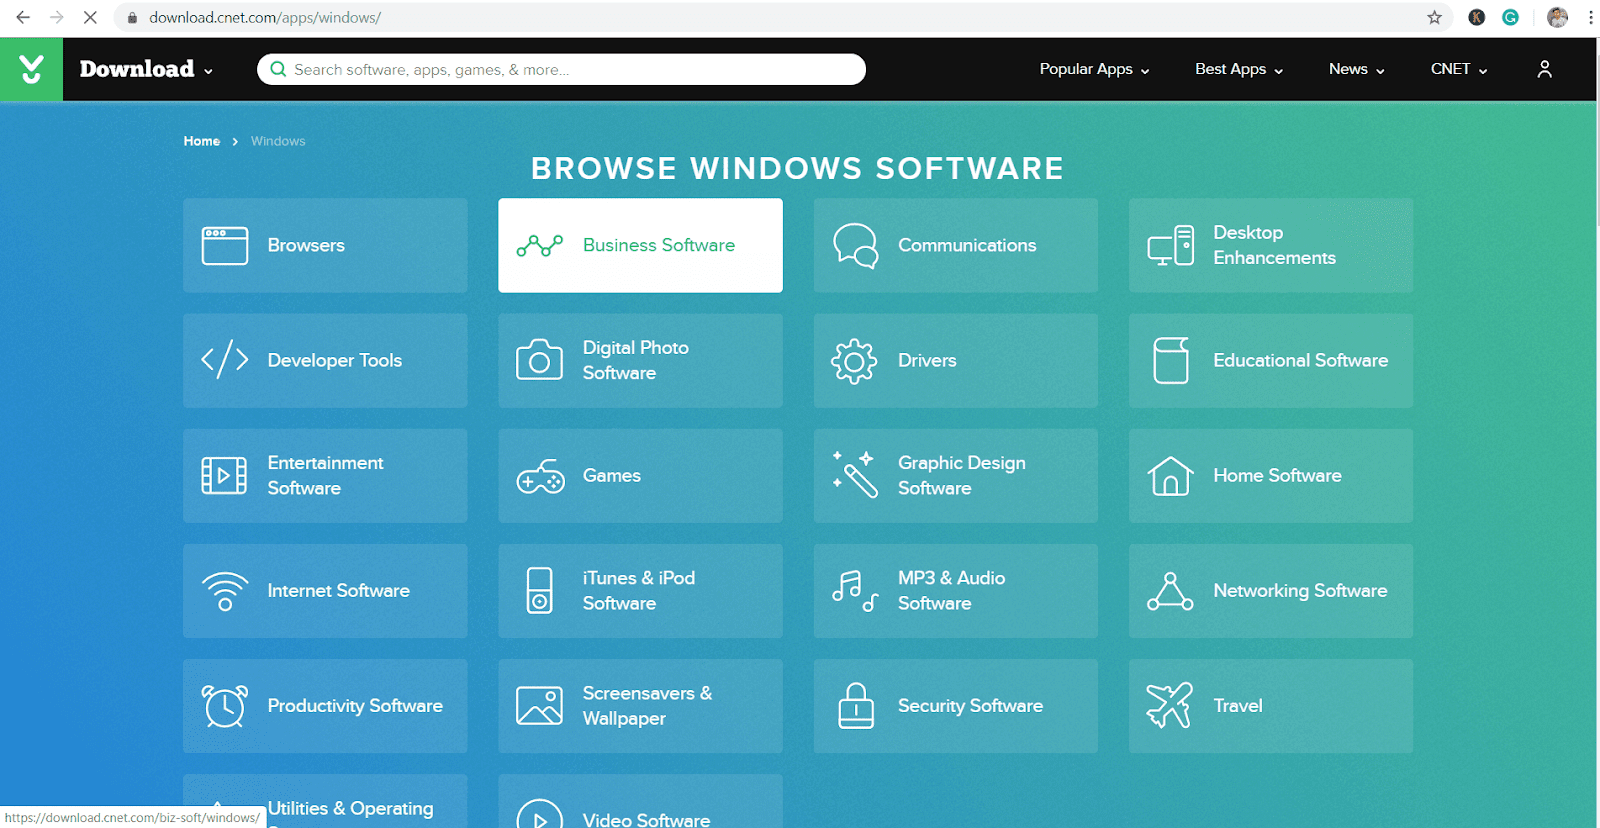 9 Best Website To Download Free Software For Pc Updated 2020